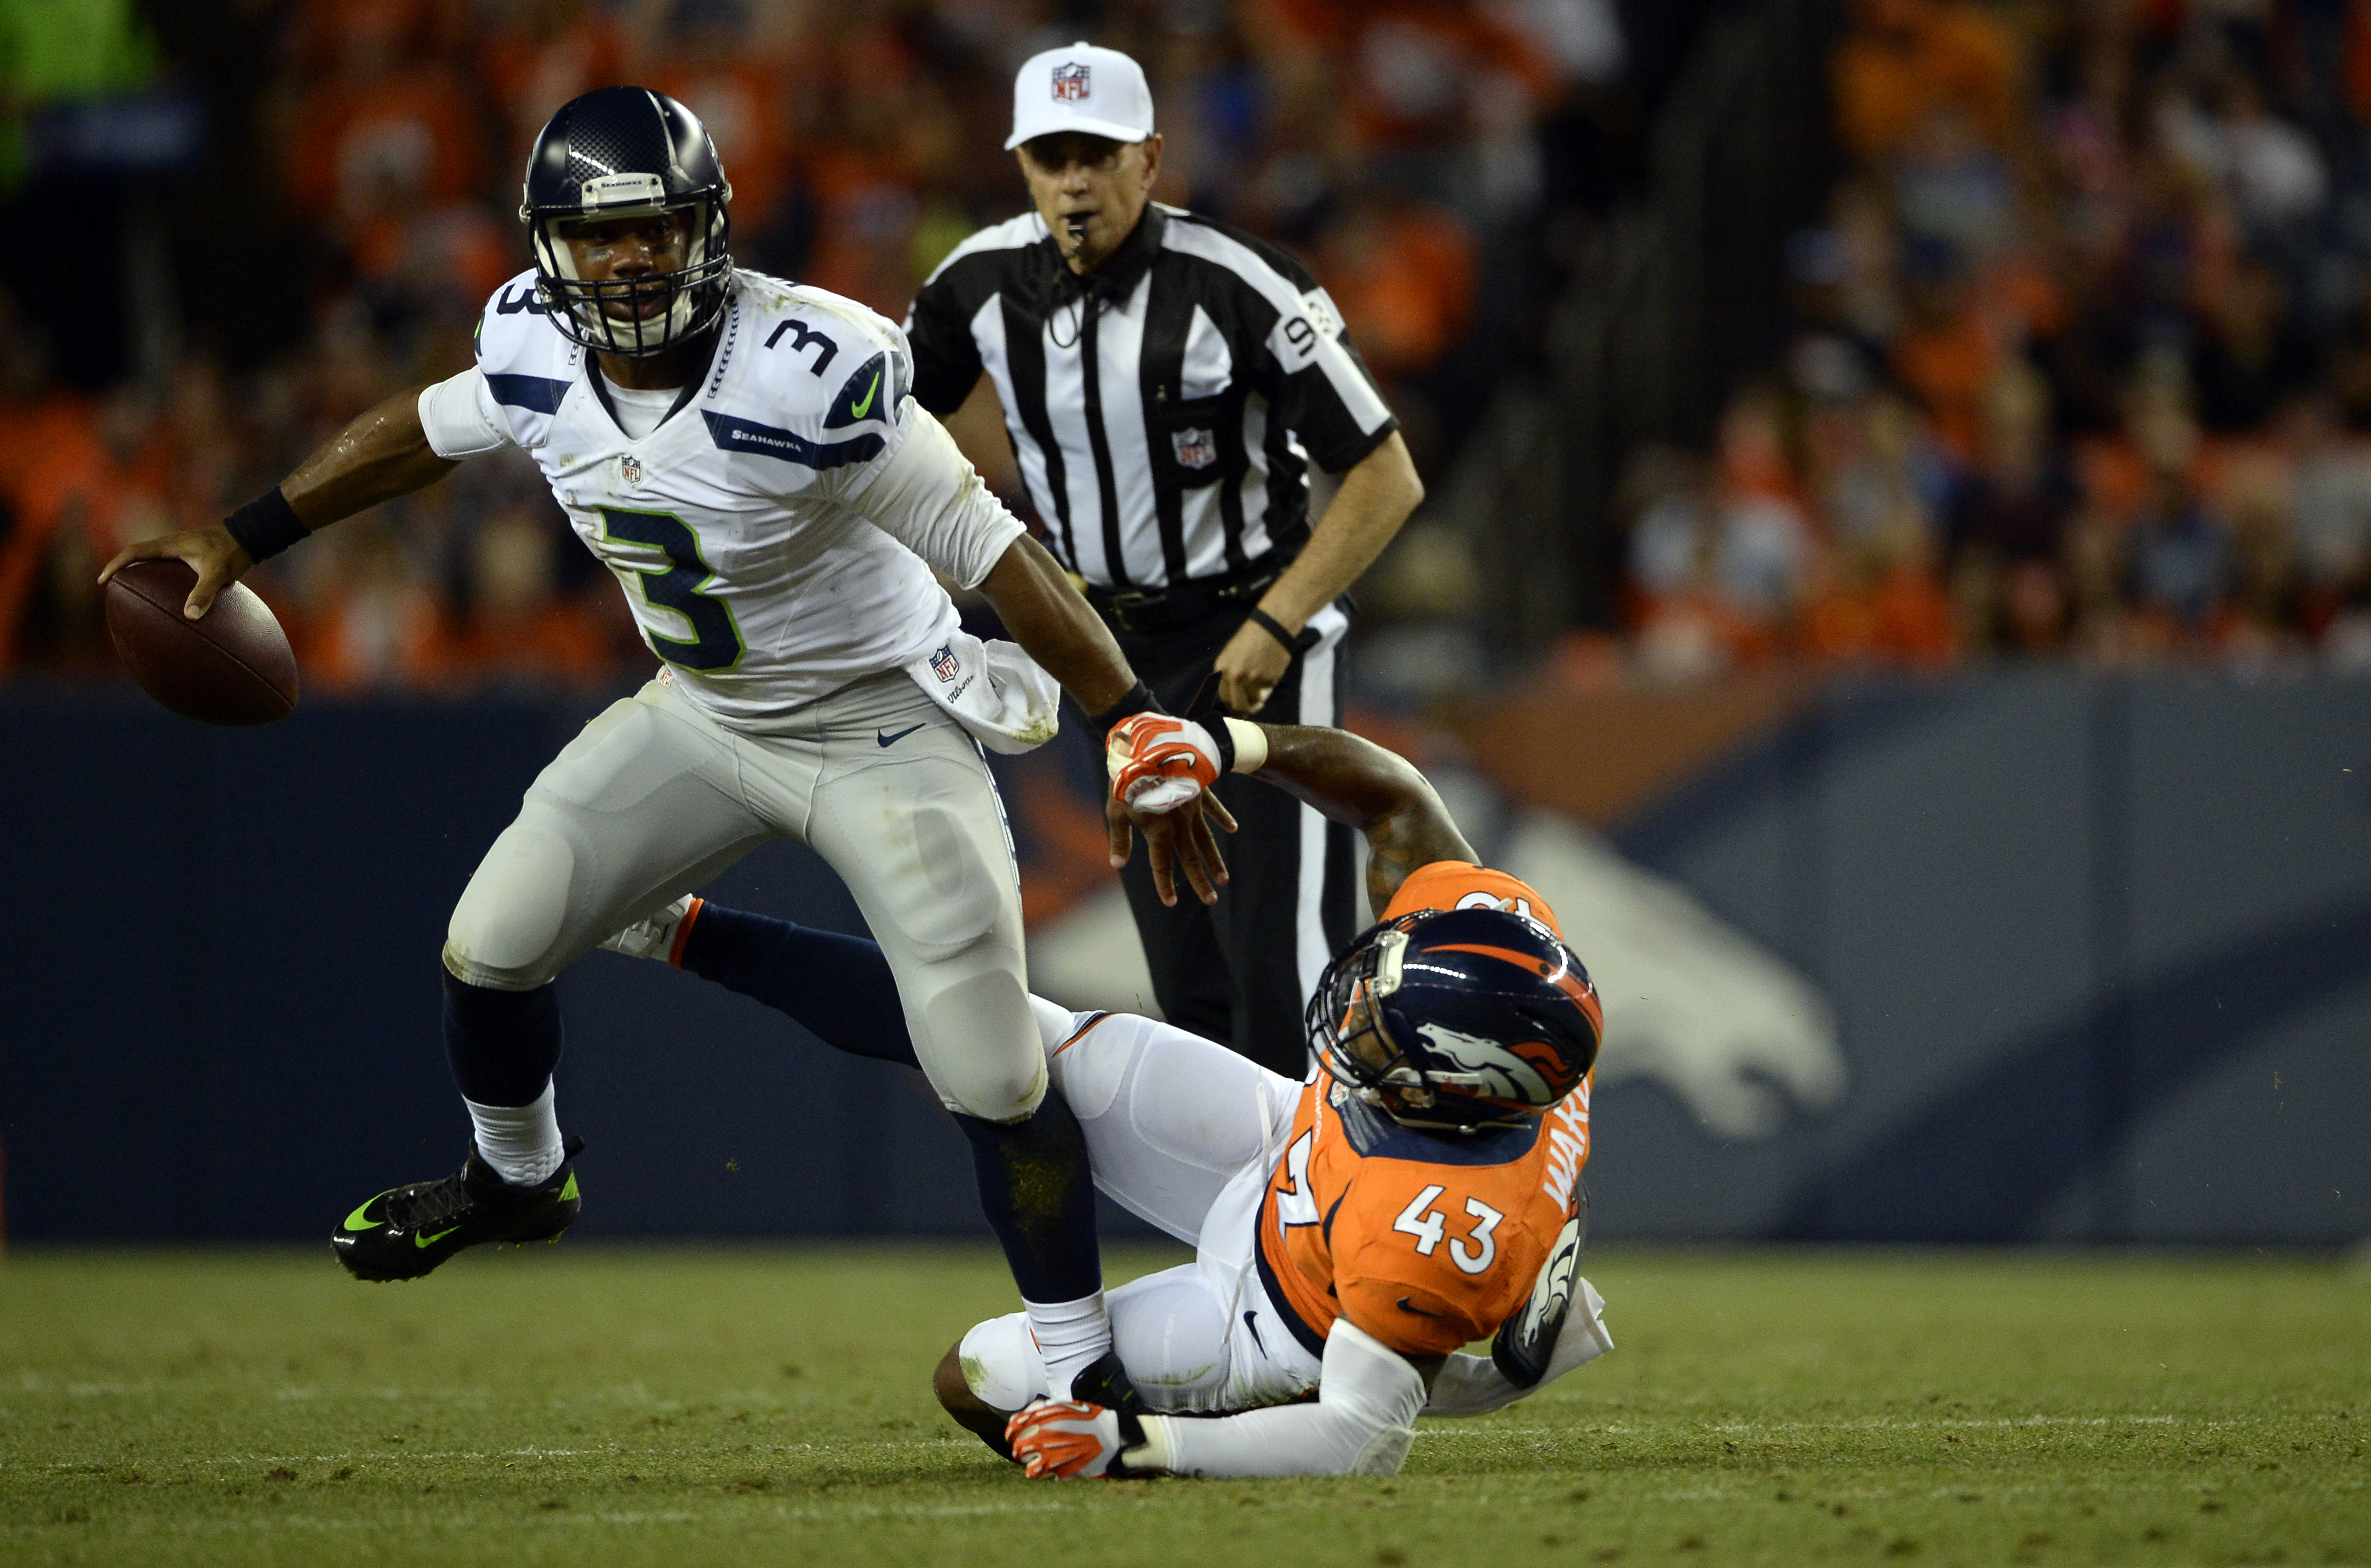 Denver Broncos vs the Seattle Seahawks